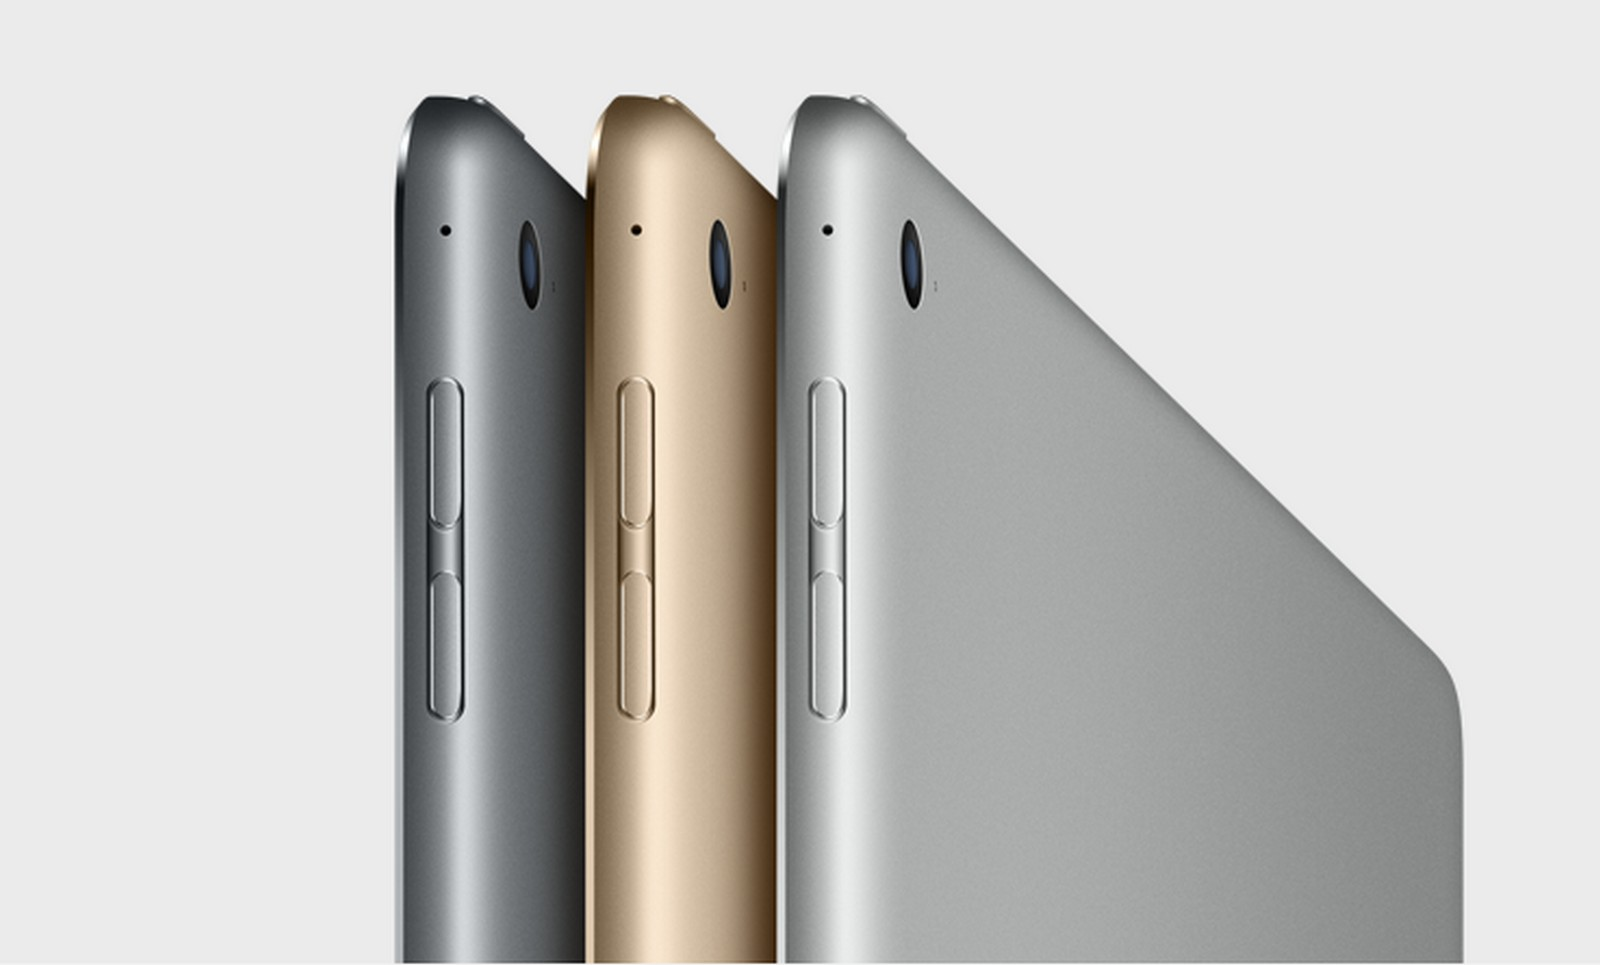 Apple-iPad-Pro comes in 3 colors